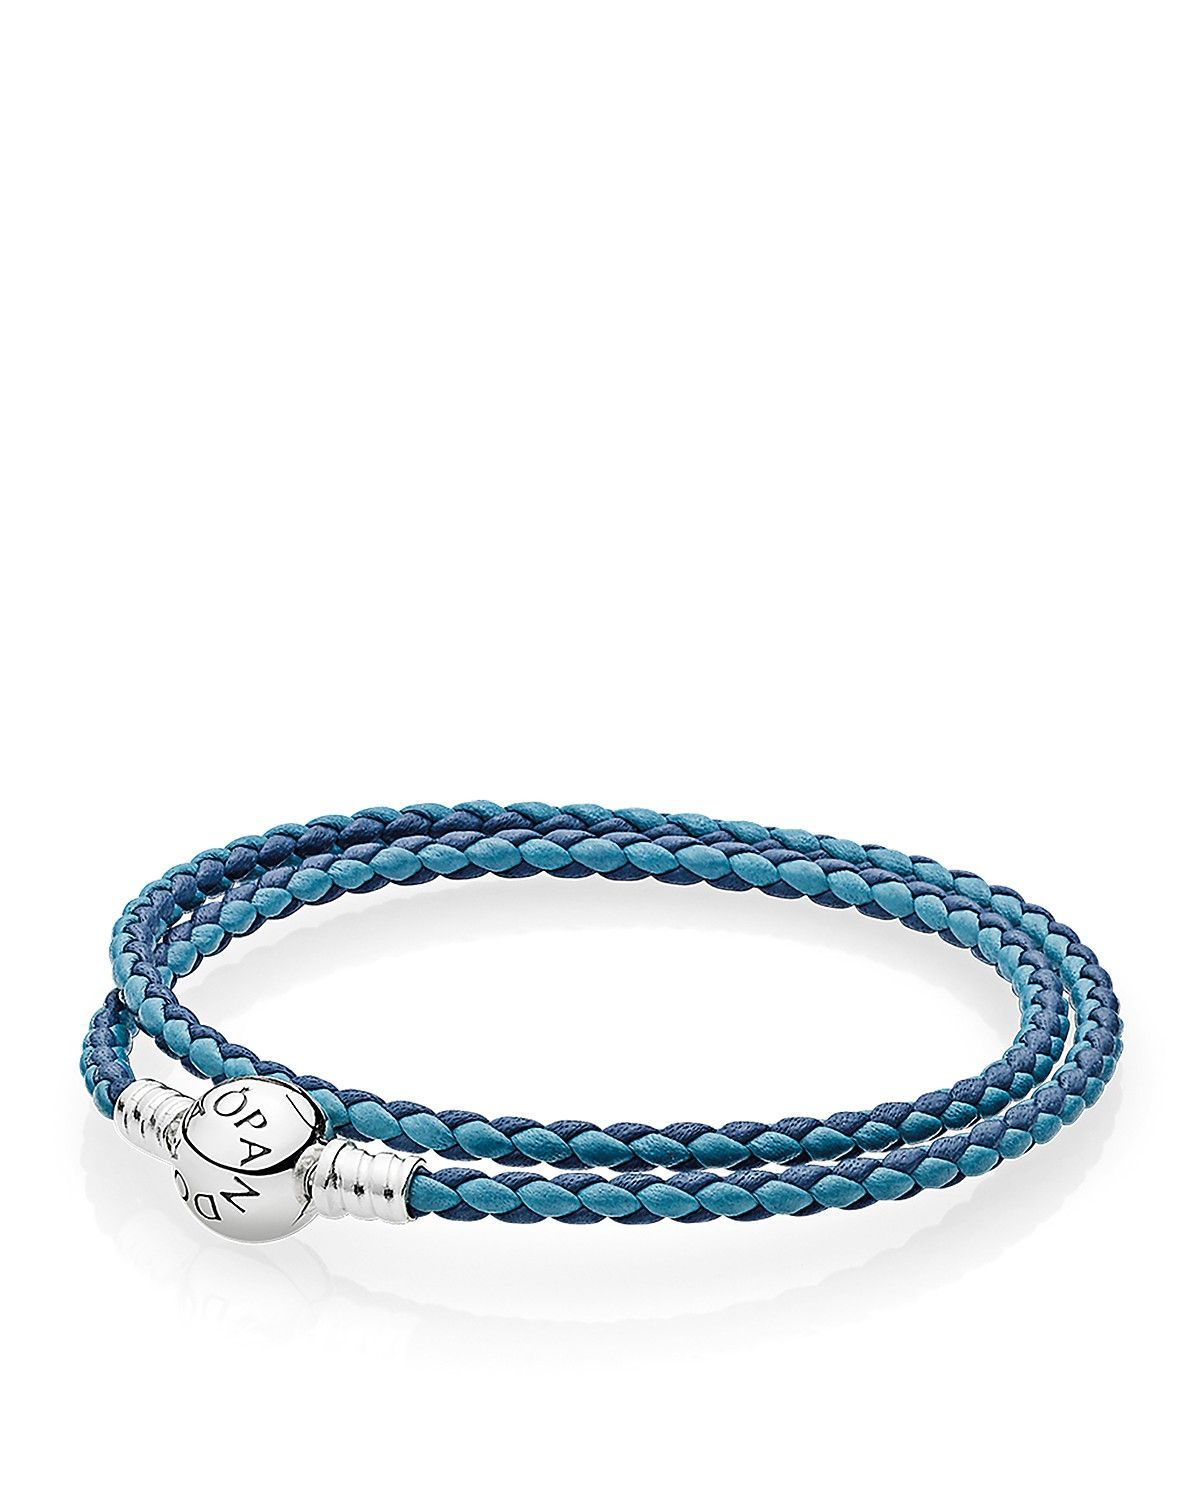 Pandora Mixed Blue Woven Double Leather Charm Bracelet Size S 13 8 In